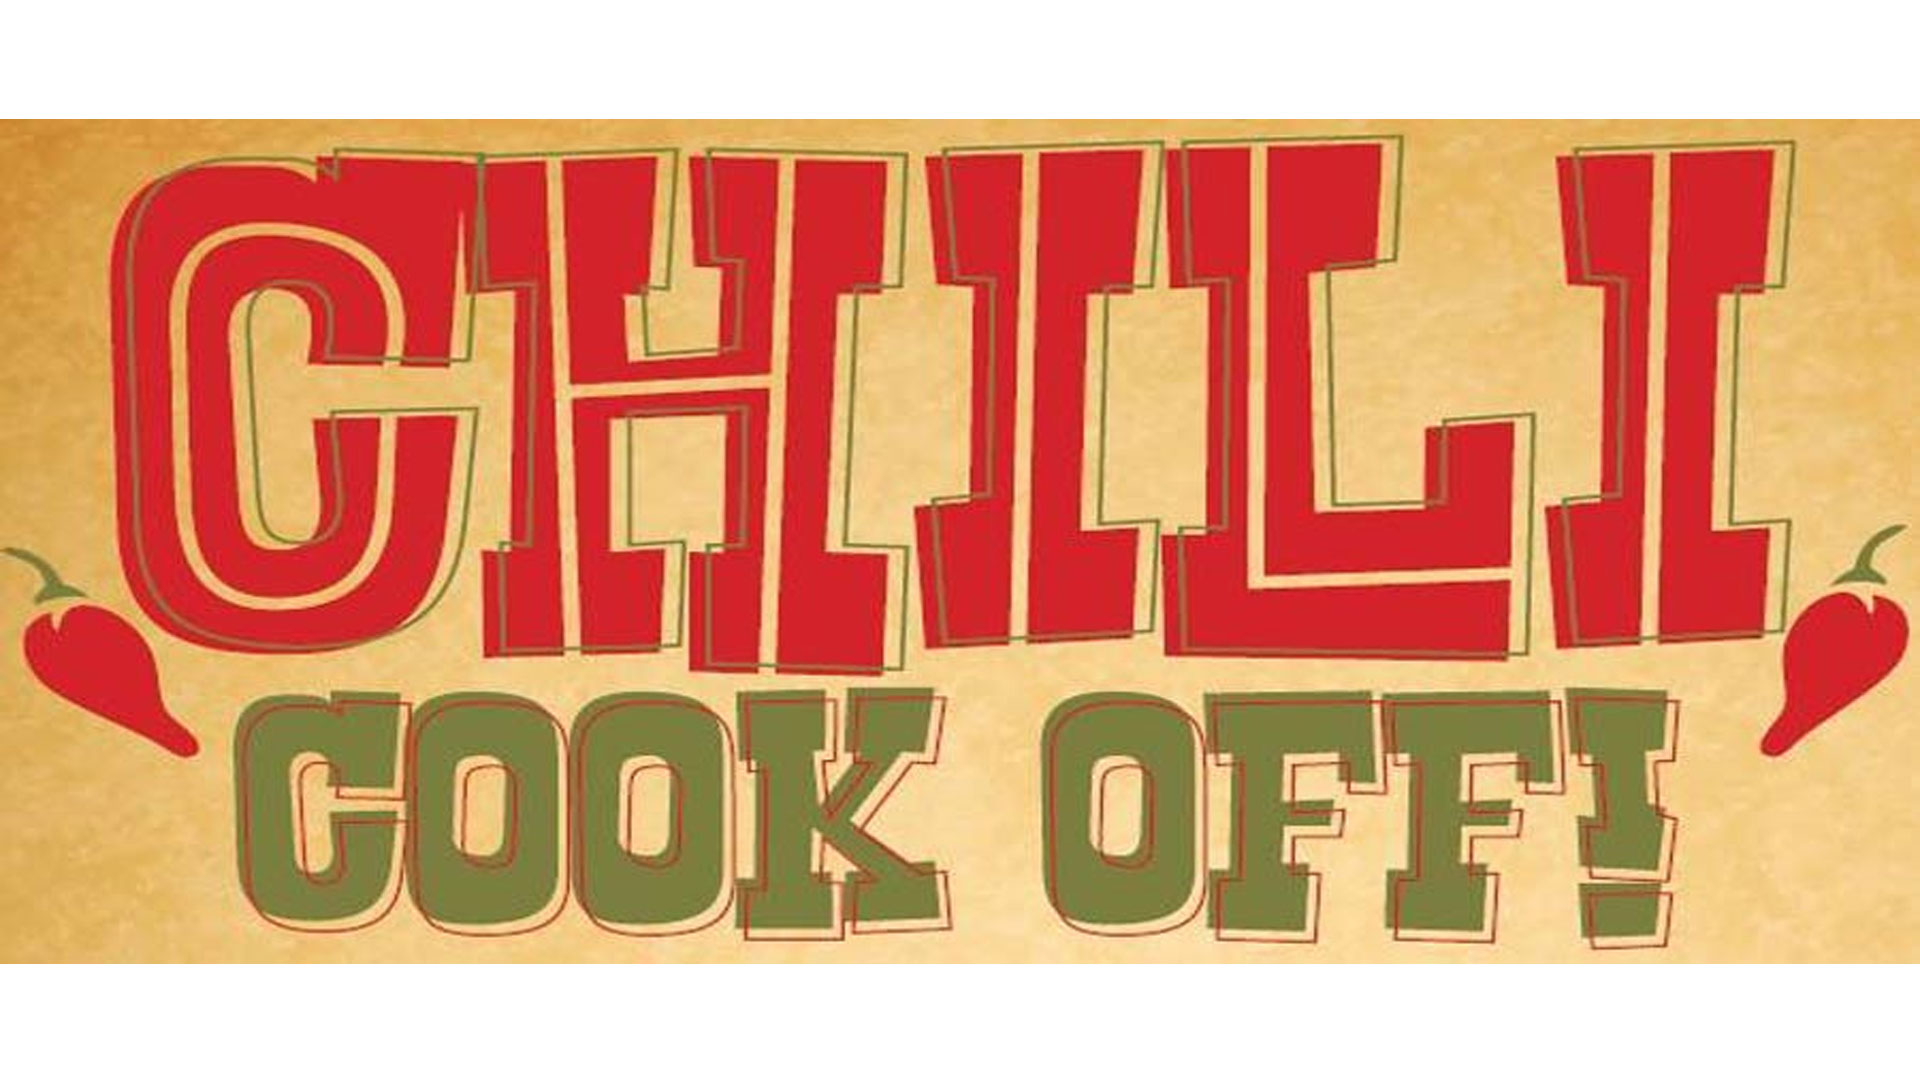 chili_cook-off_1.jpg